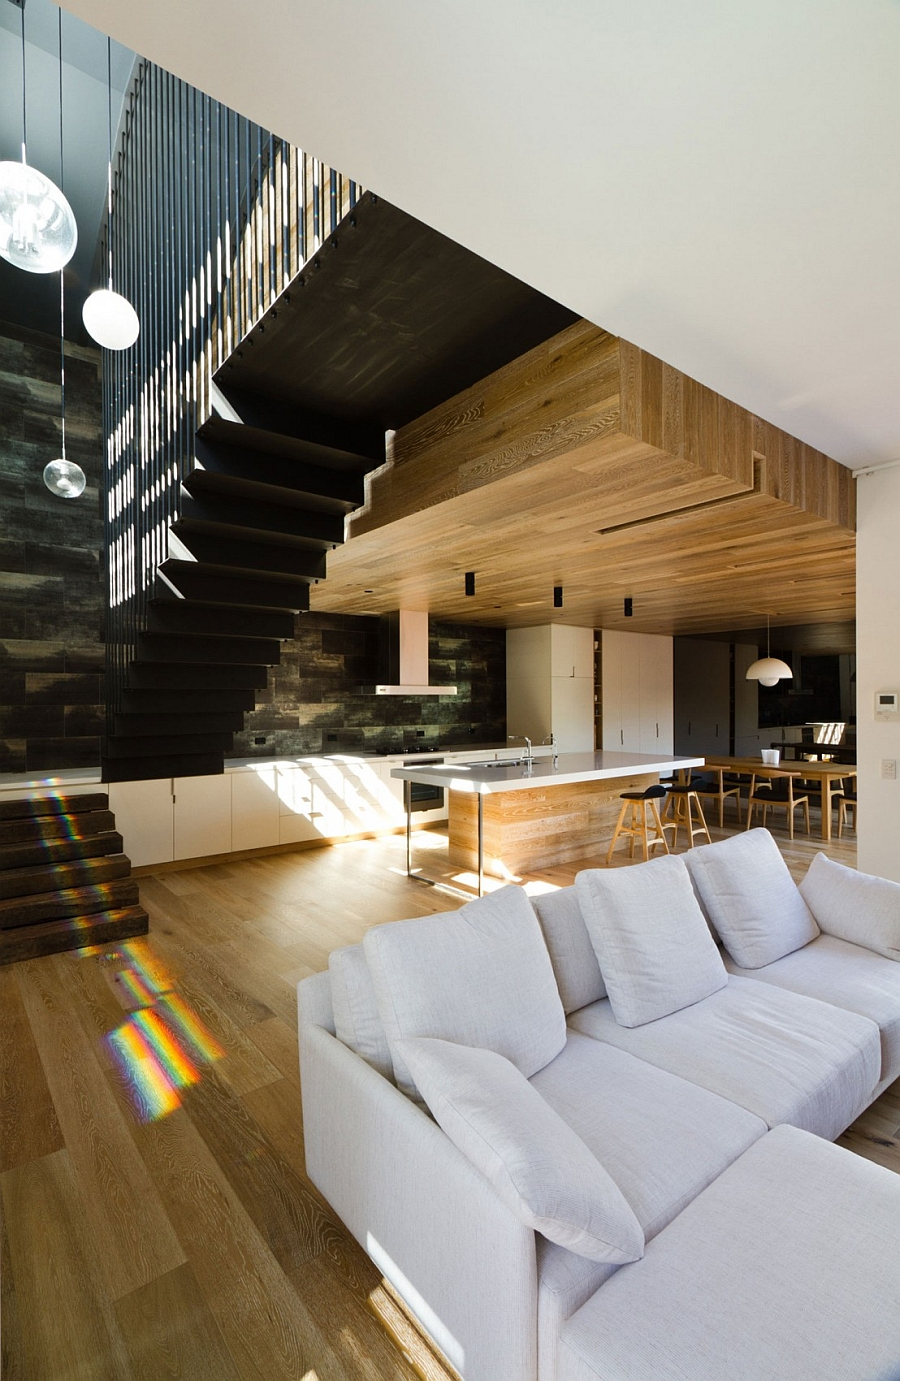 Modern interior with a high ceiling and warm wooden surfaces